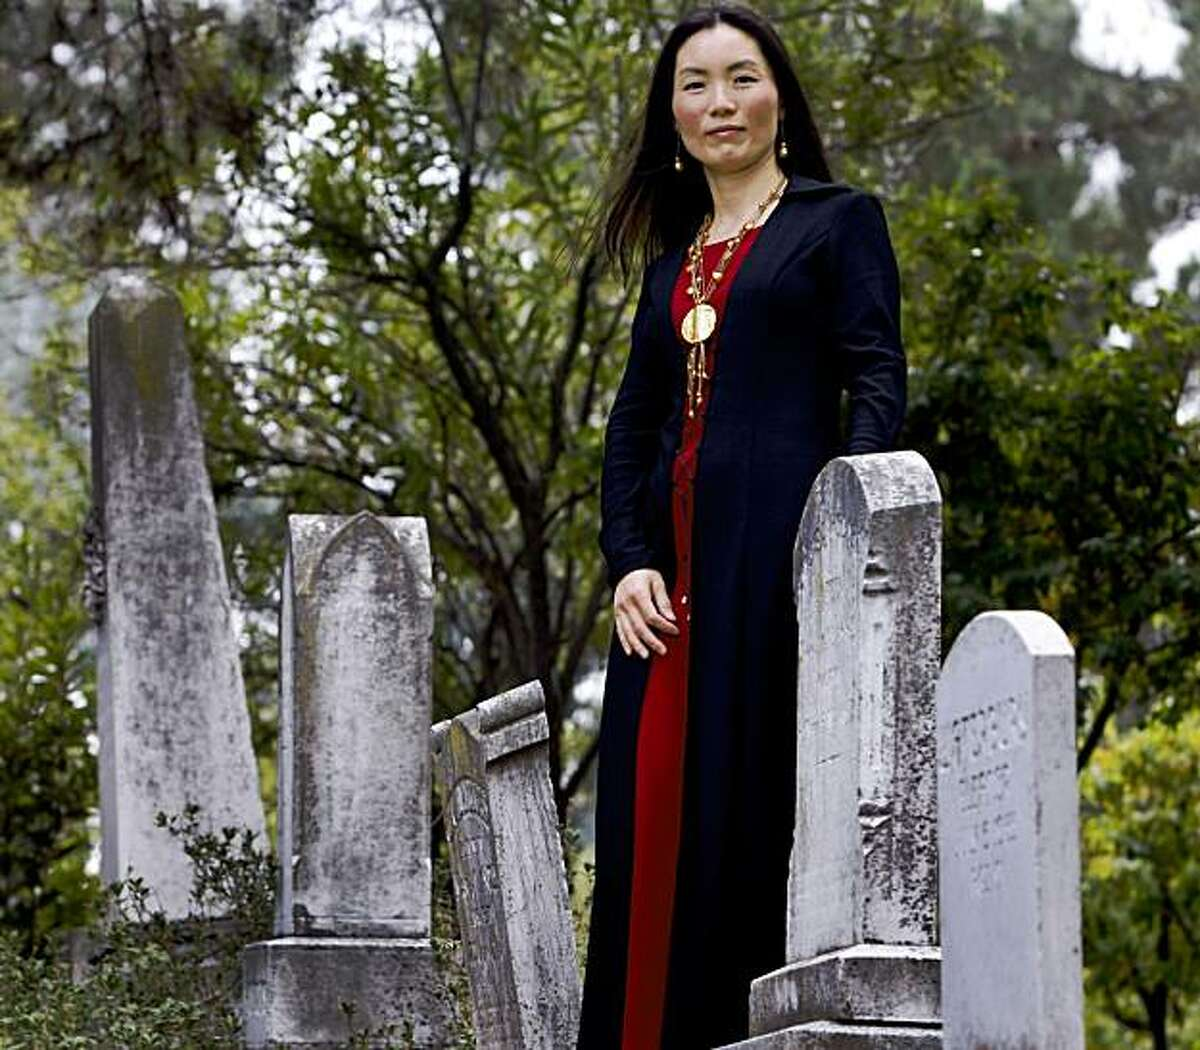 """Author Ying Compestine visits a cemetery in Lafayette, Calif., on Thursday, Oct. 15, 2009. Compestine's latest book, """"Hungry Ghosts,"""" profiles stories and feasts about the dead in the Chinese tradition."""